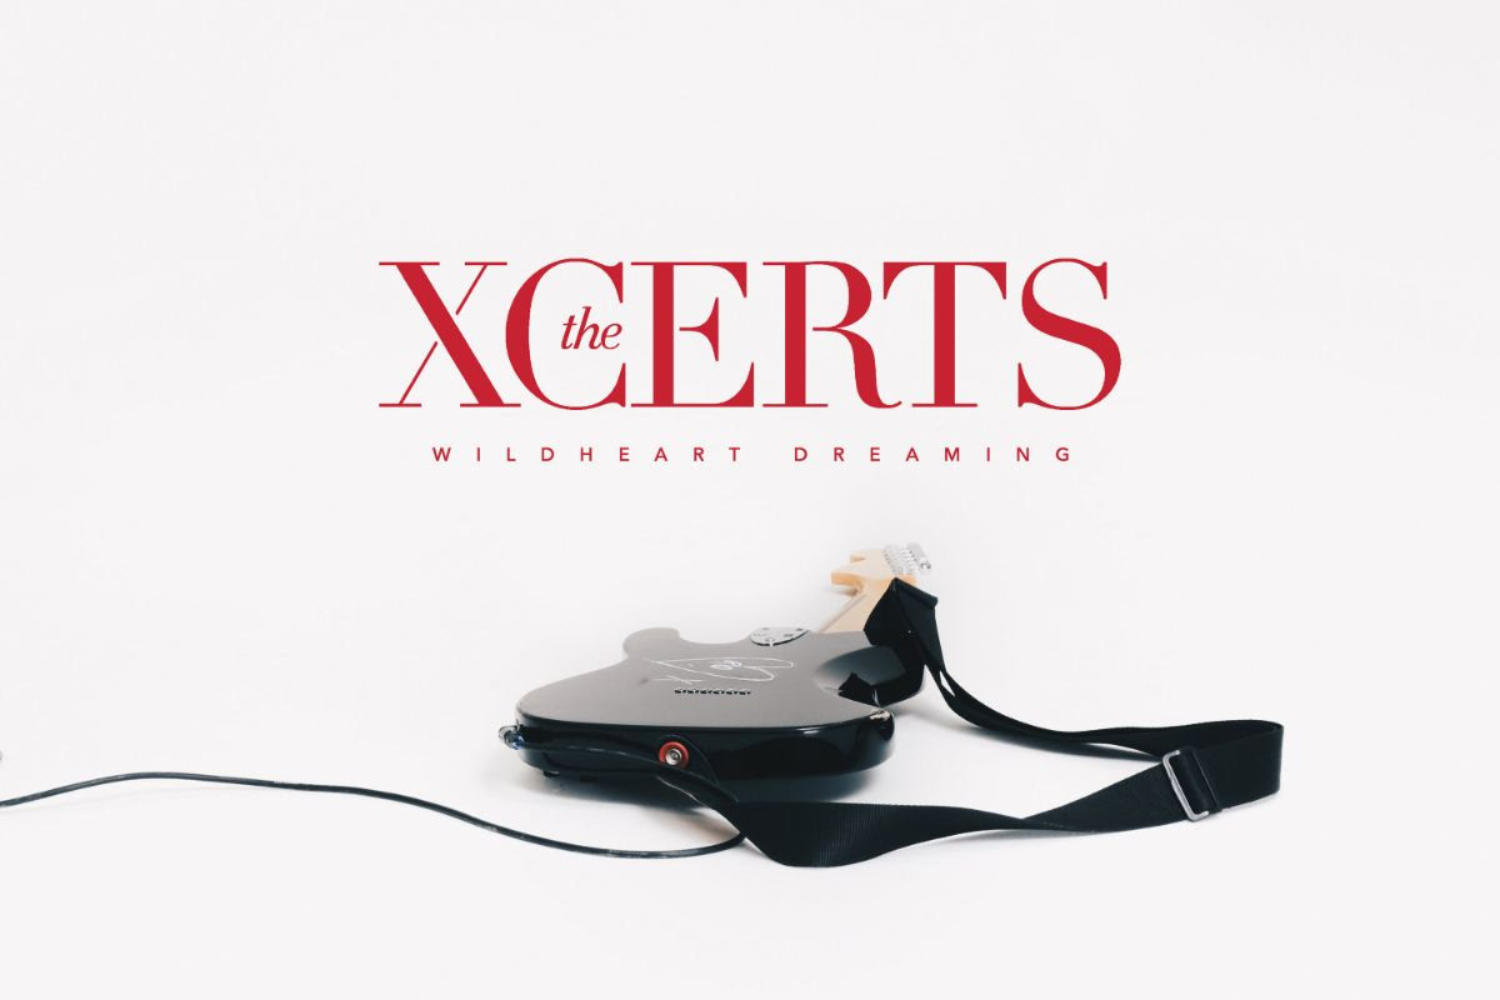 The Xcerts - Wildheart Dreaming